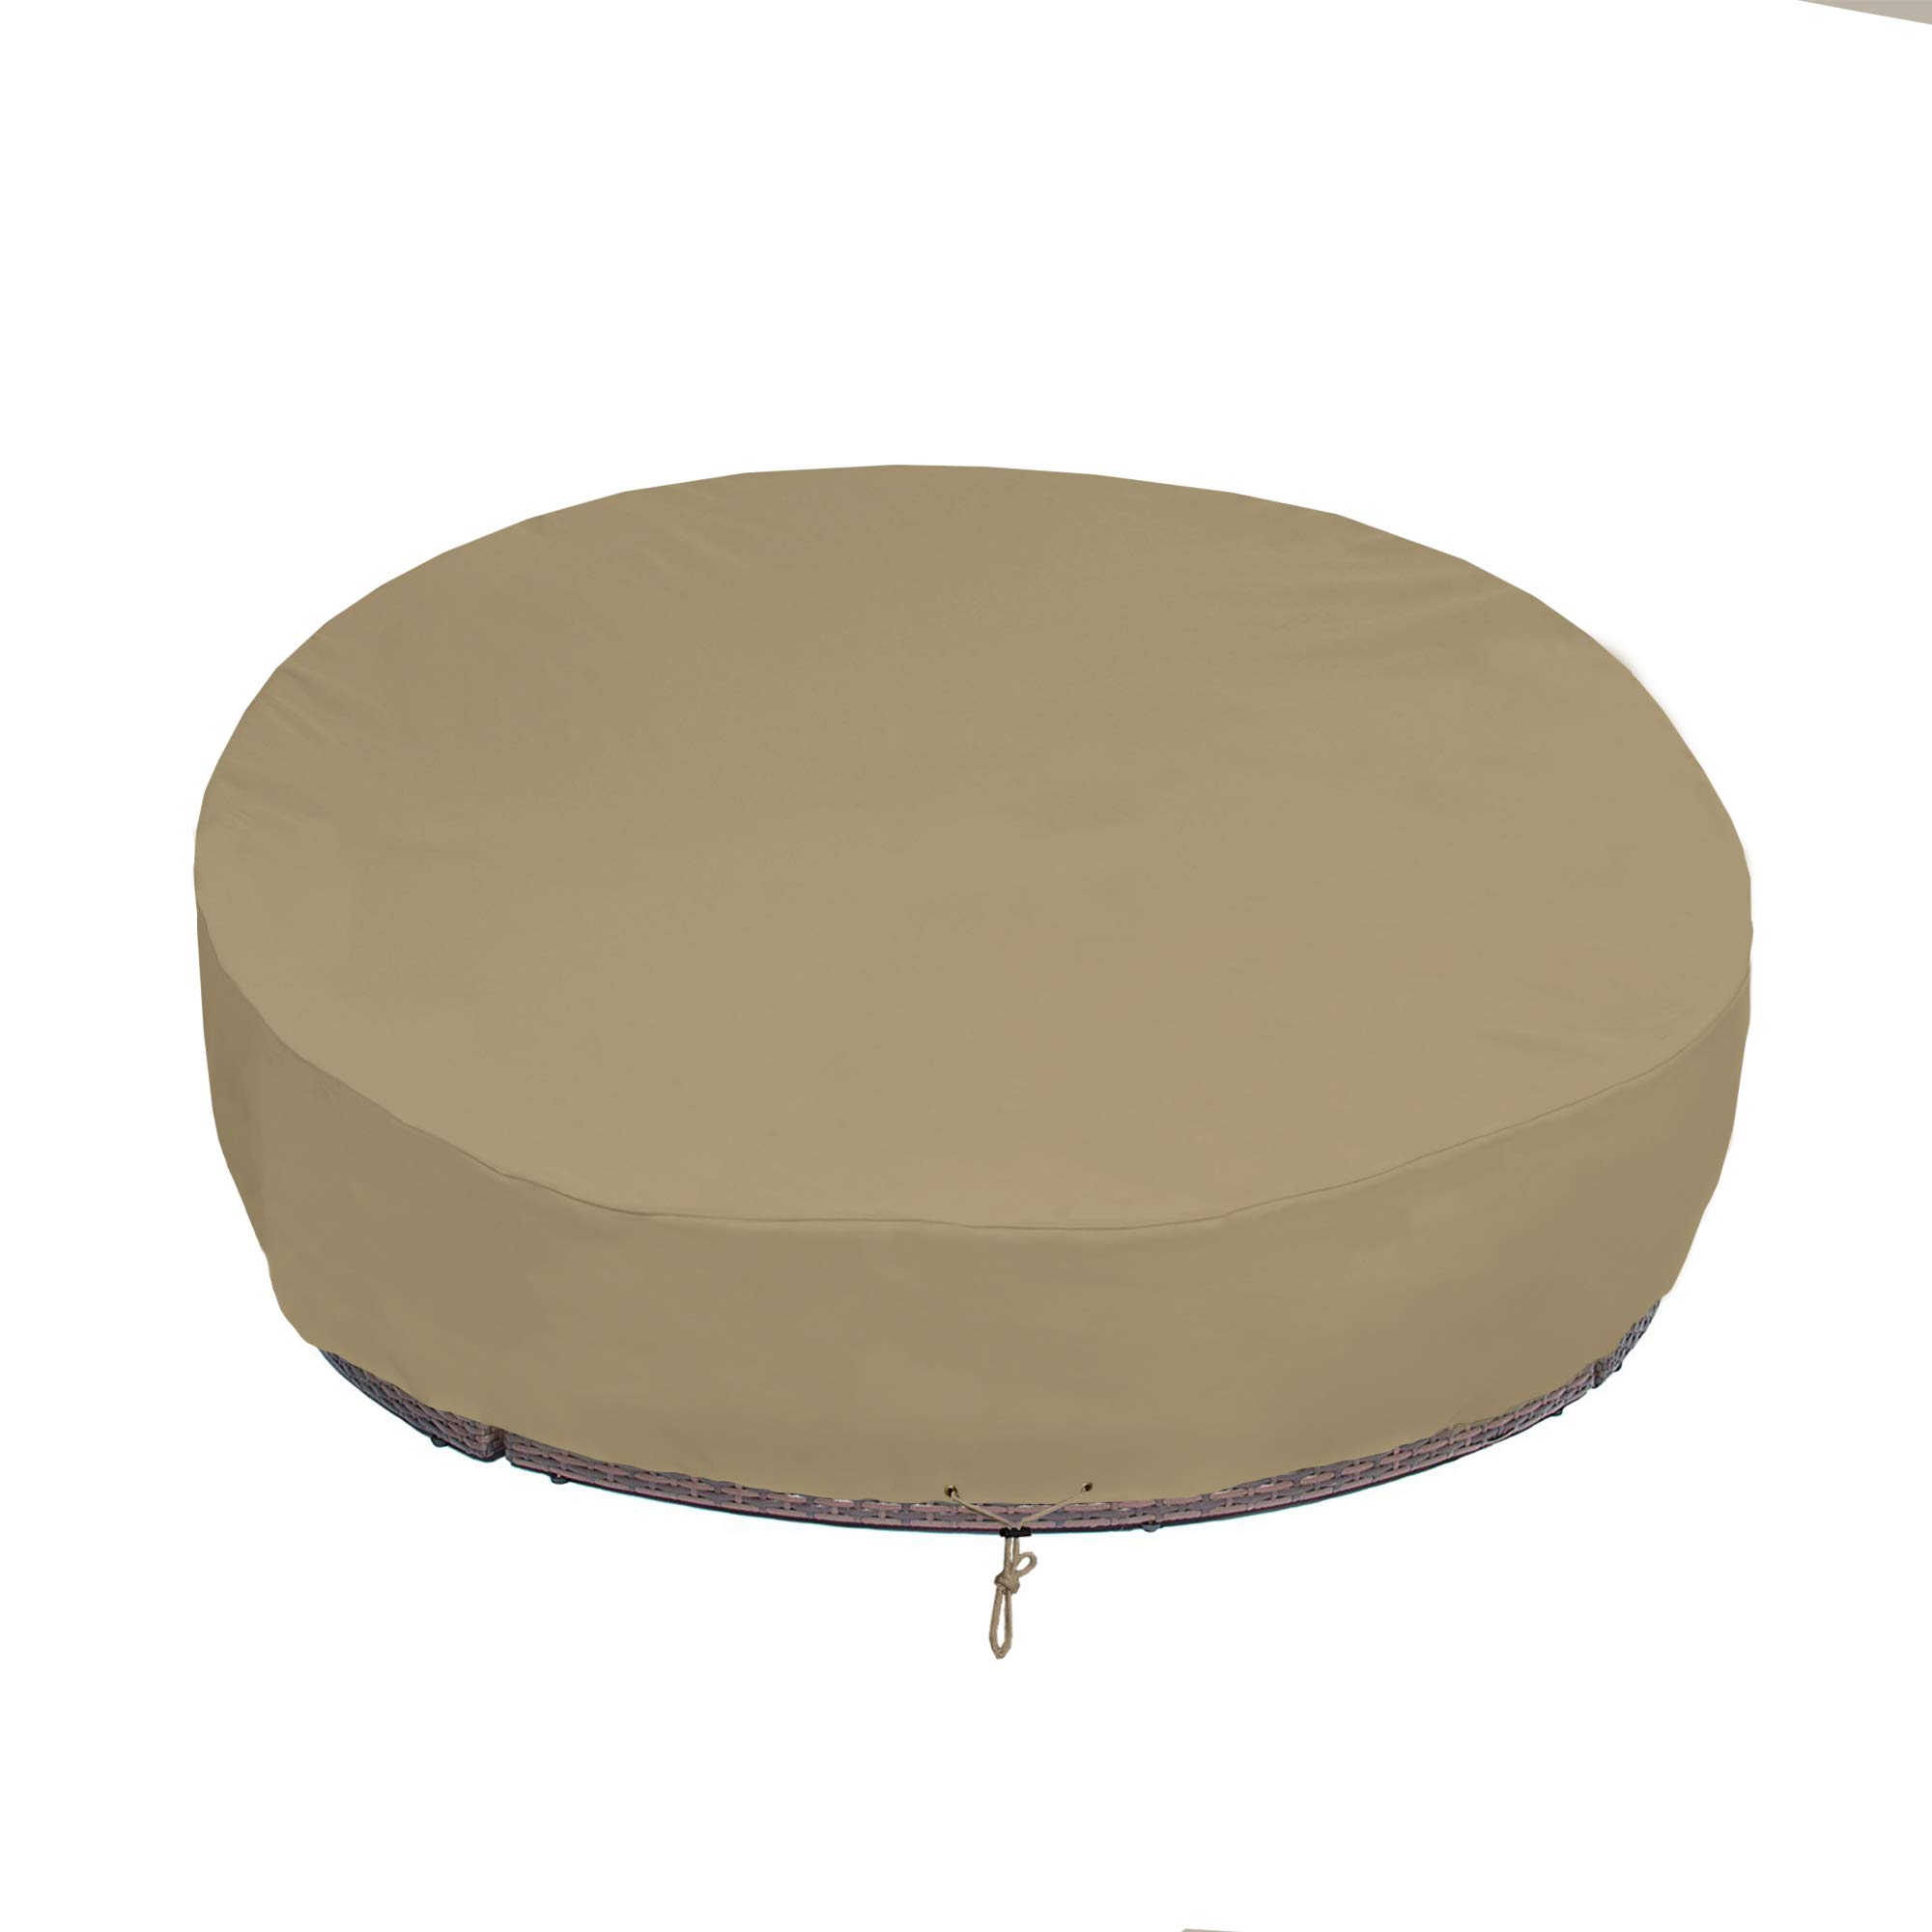 SunPatio Round Patio Daybed Cover 75 Inch, Outdoor Canopy Daybed Sofa Cover with Waterproof Sealed Seam, Fadestop, All Weather Protection, Taupe by SunPatio